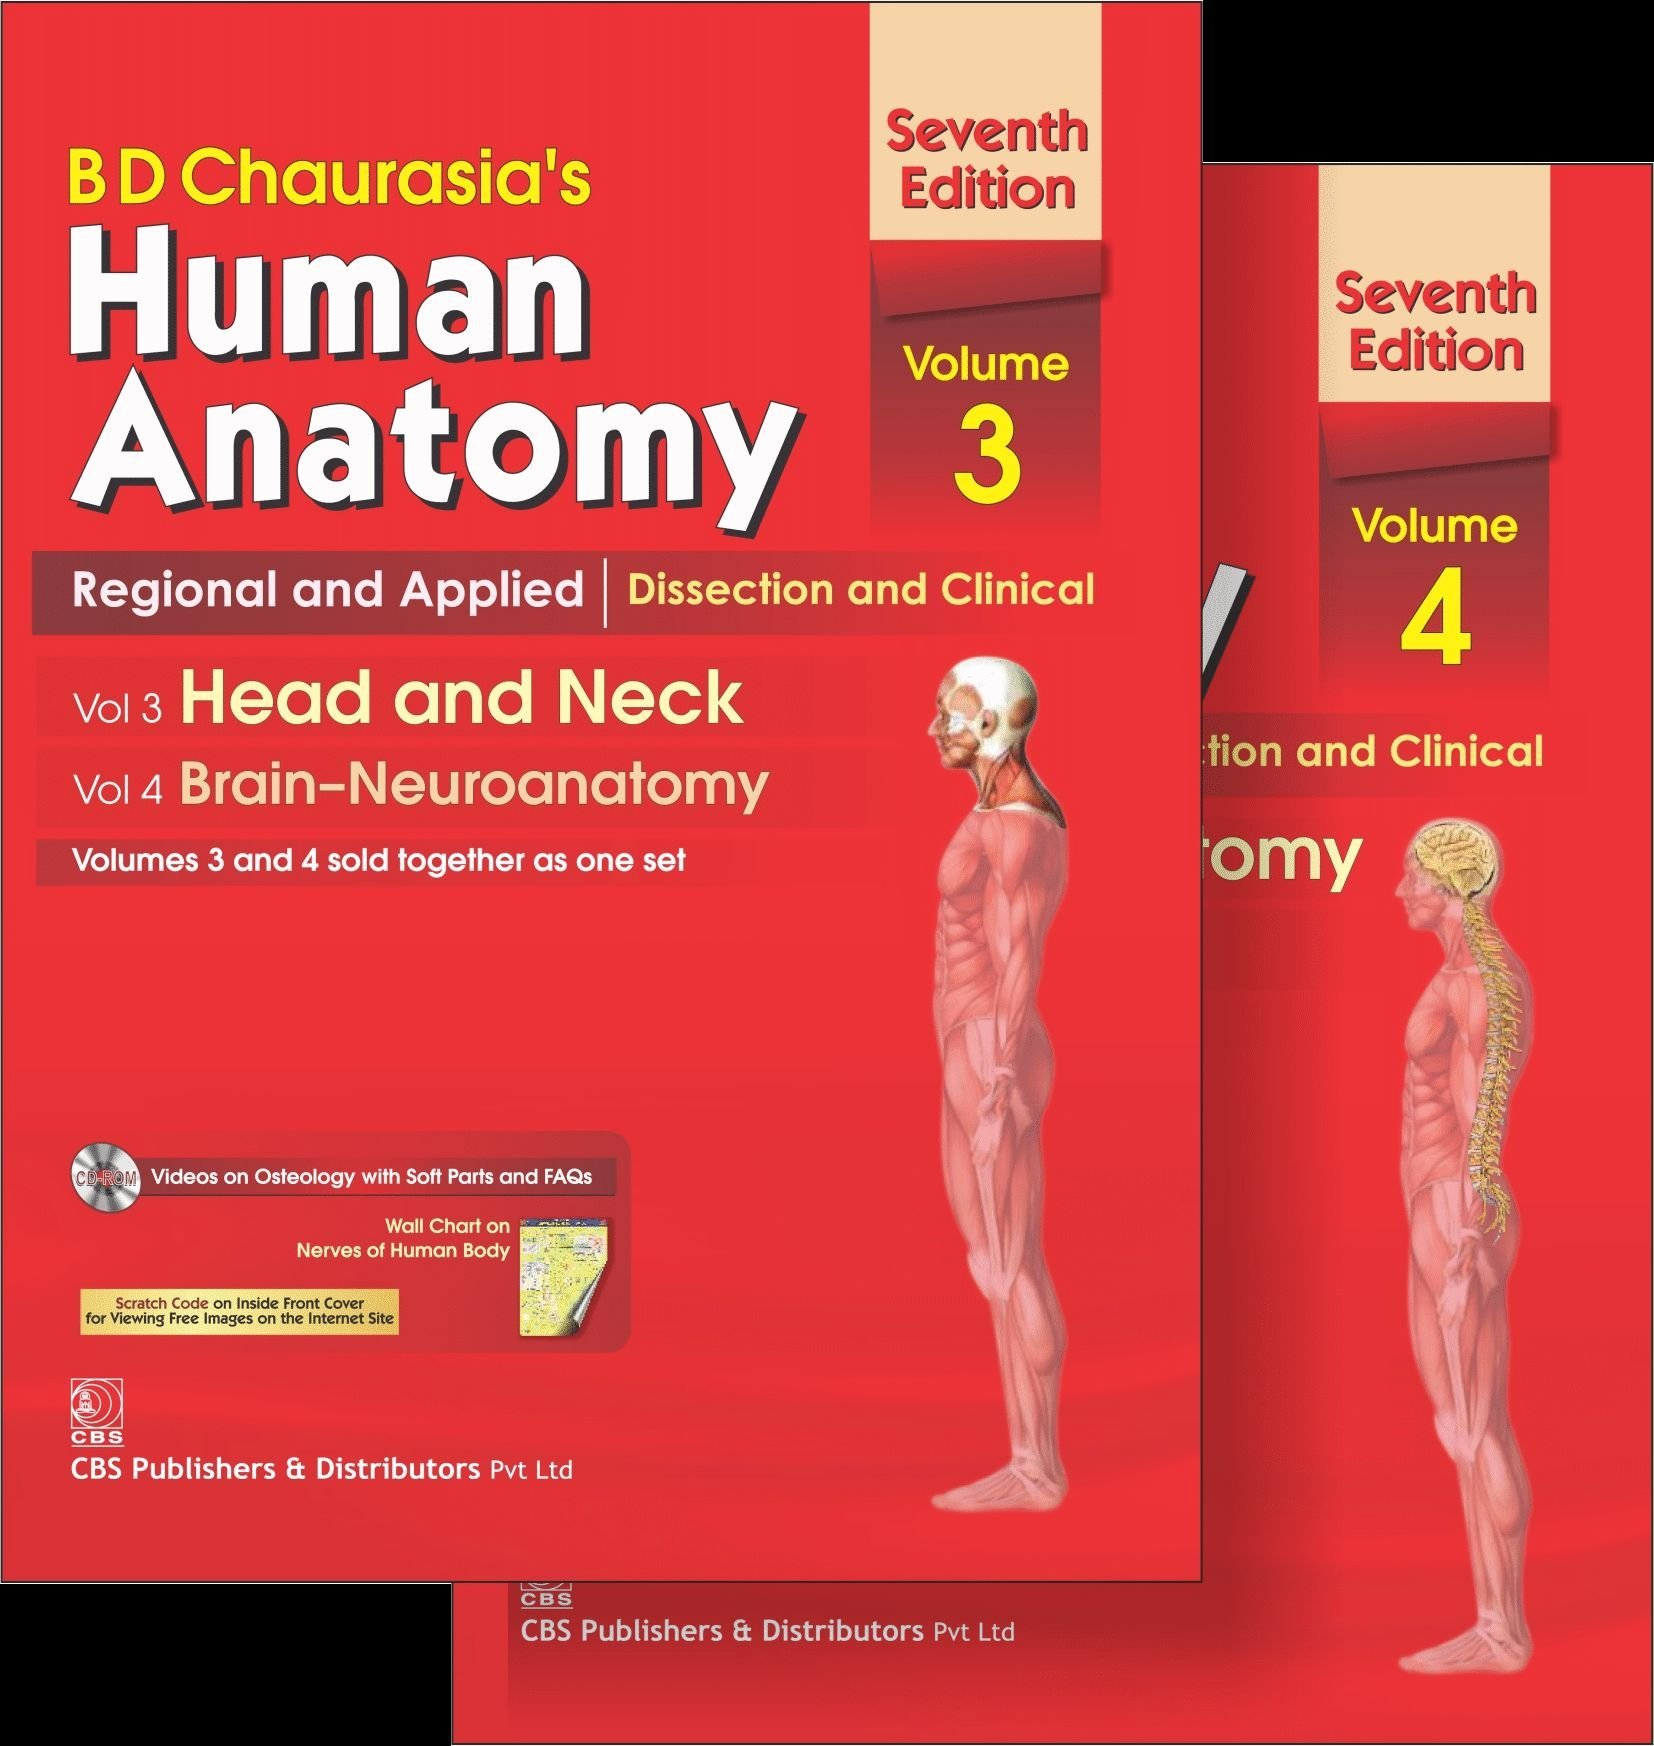 Buy Human Anatomy: Regional and Applied Dissection and Clinical set ...